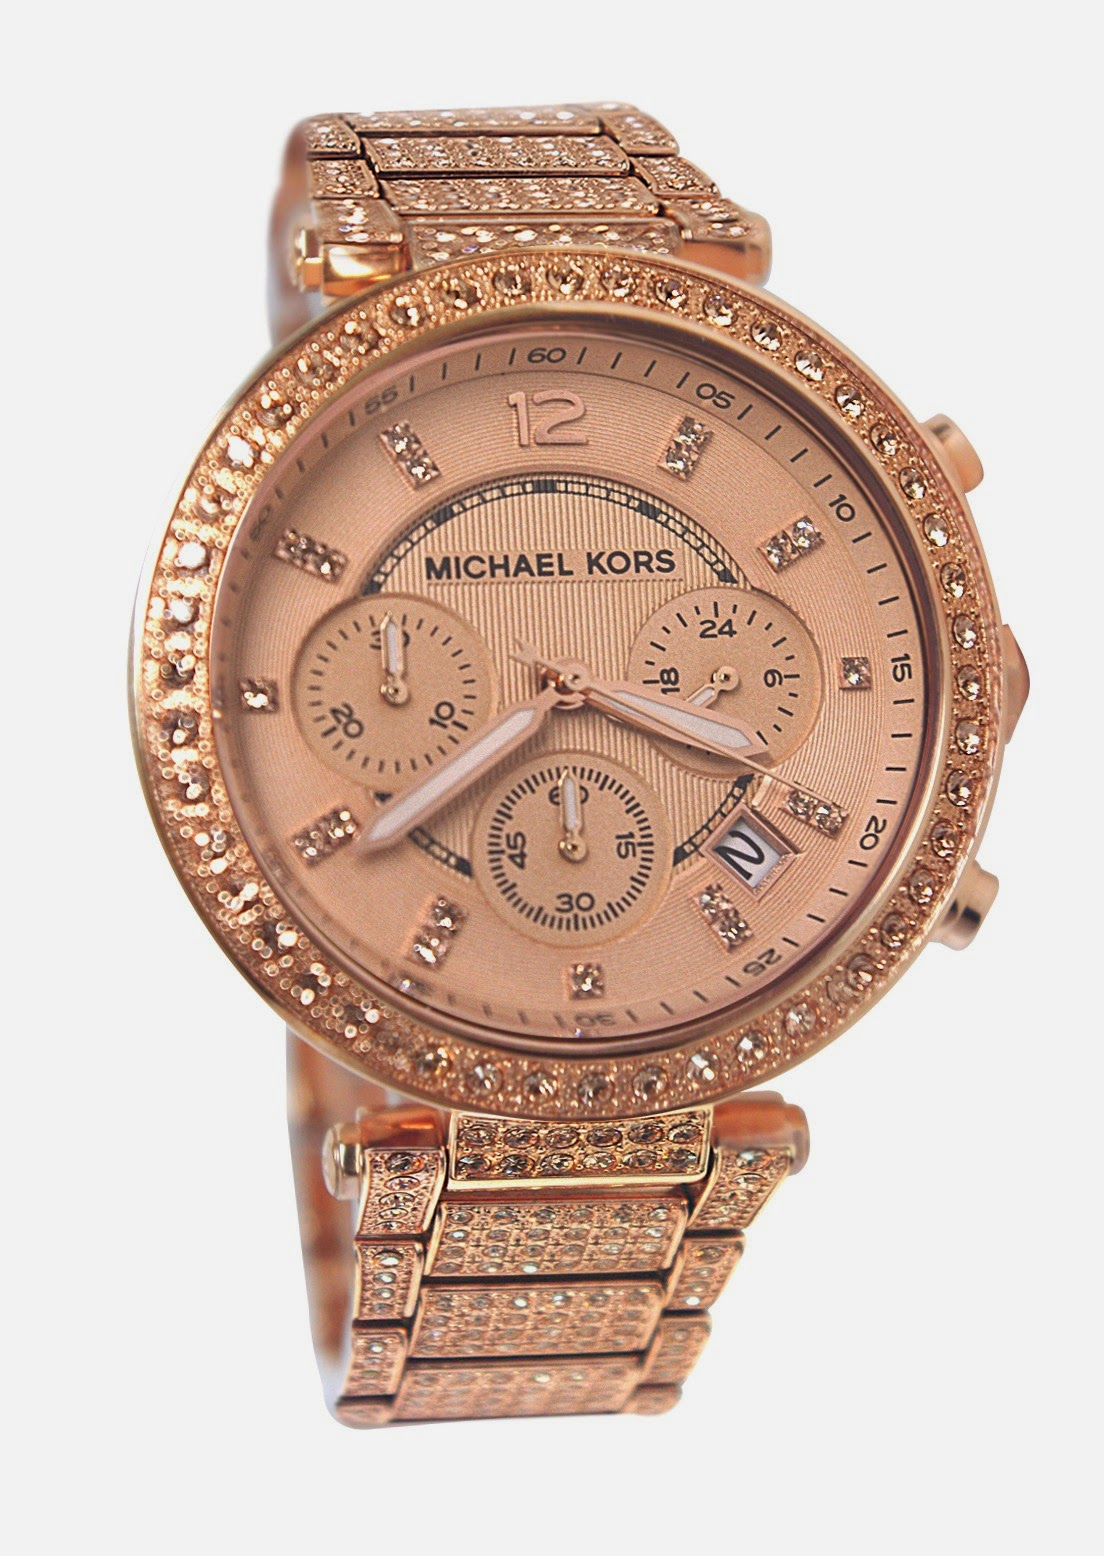 michael kors watches rose gold women fashions feel